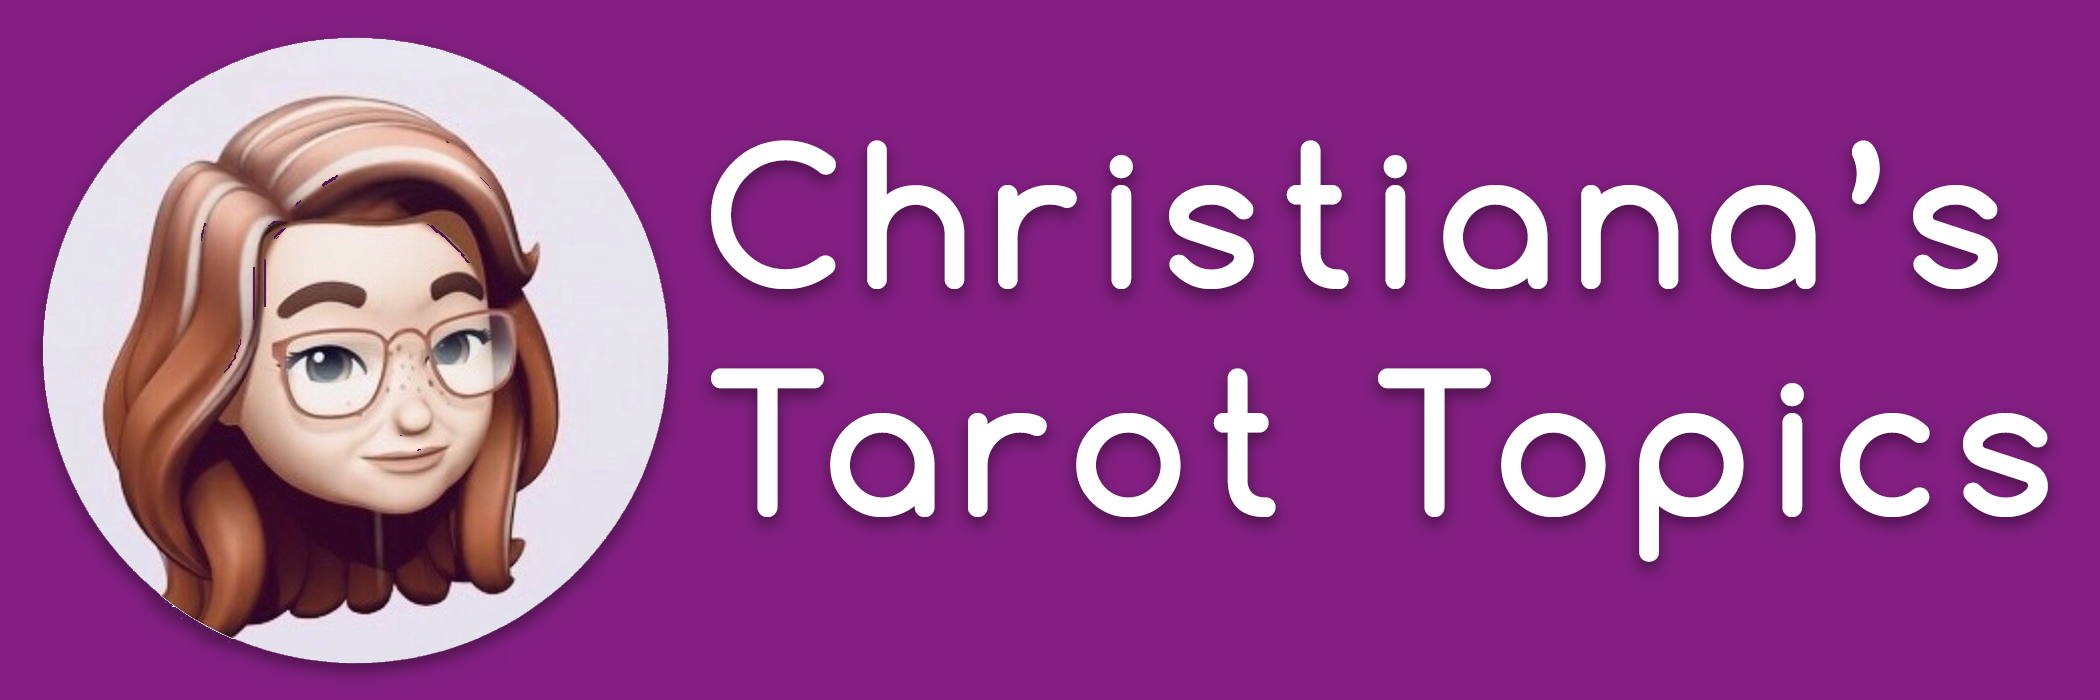 Christiana's Tarot Topics